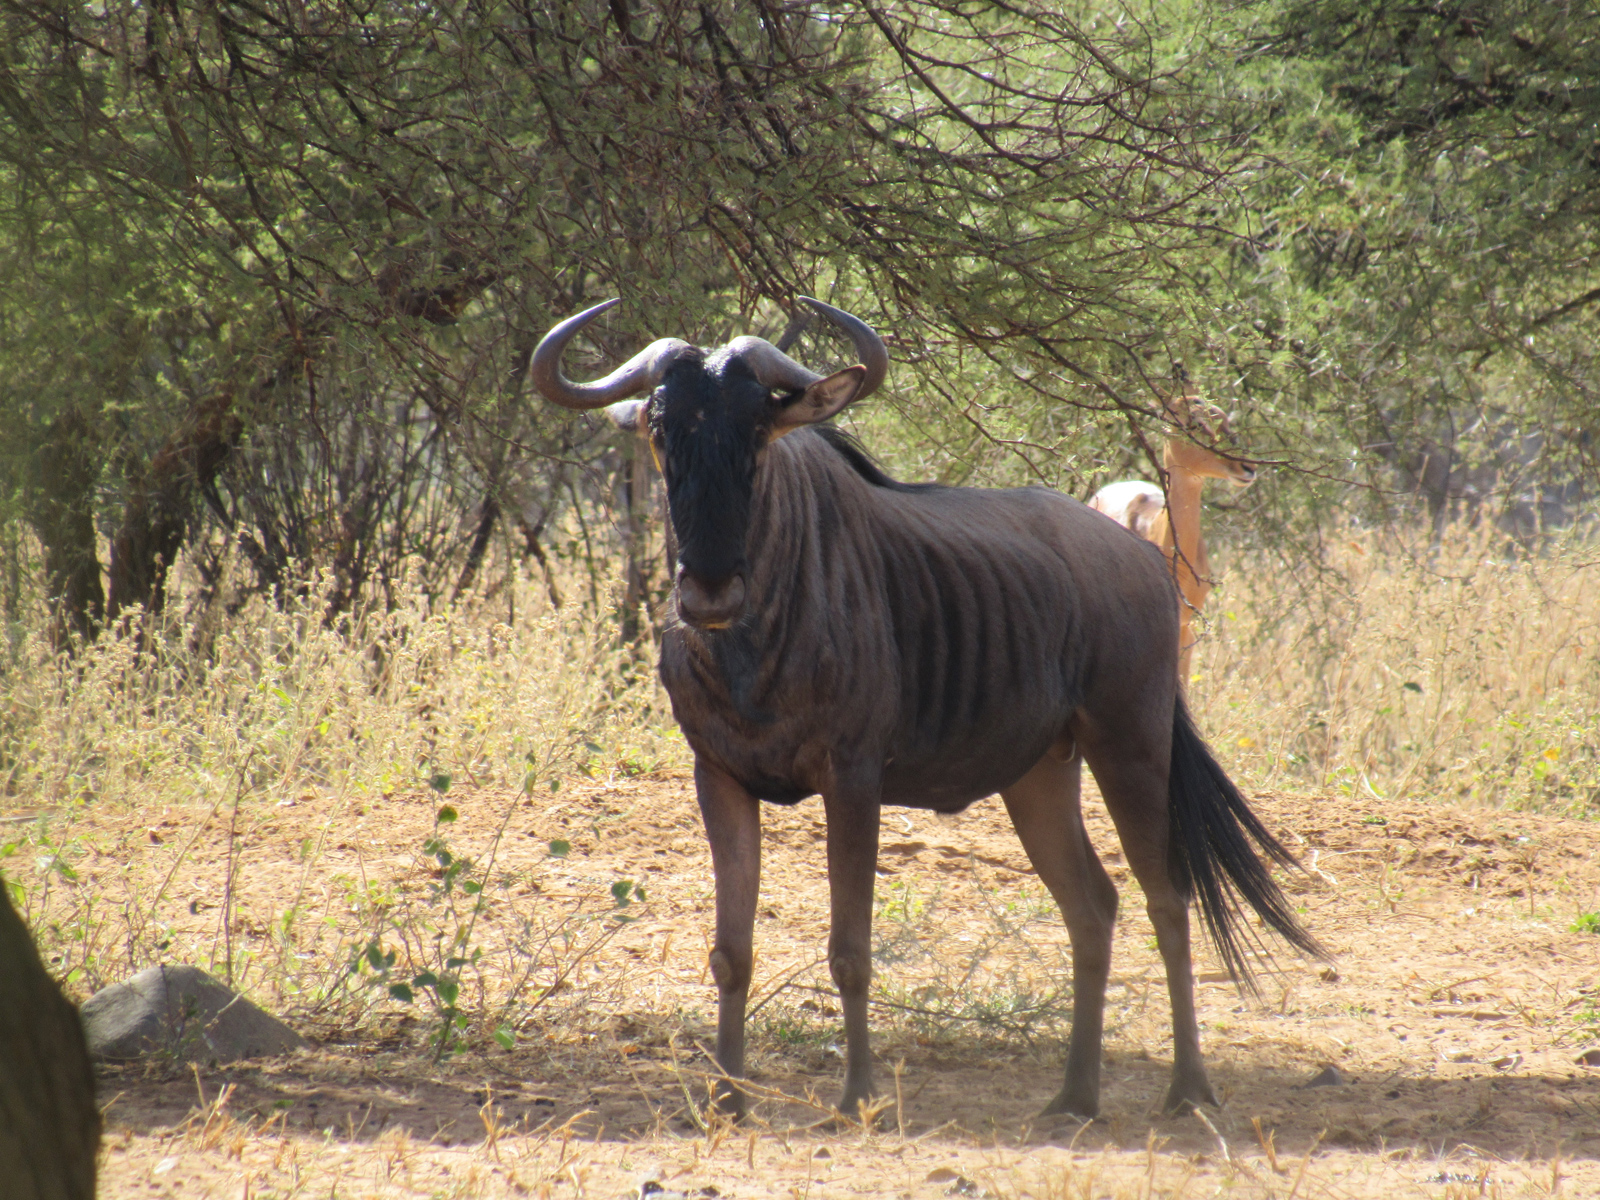 Blue Wildebeest. Photo by Chivic African Safaris.